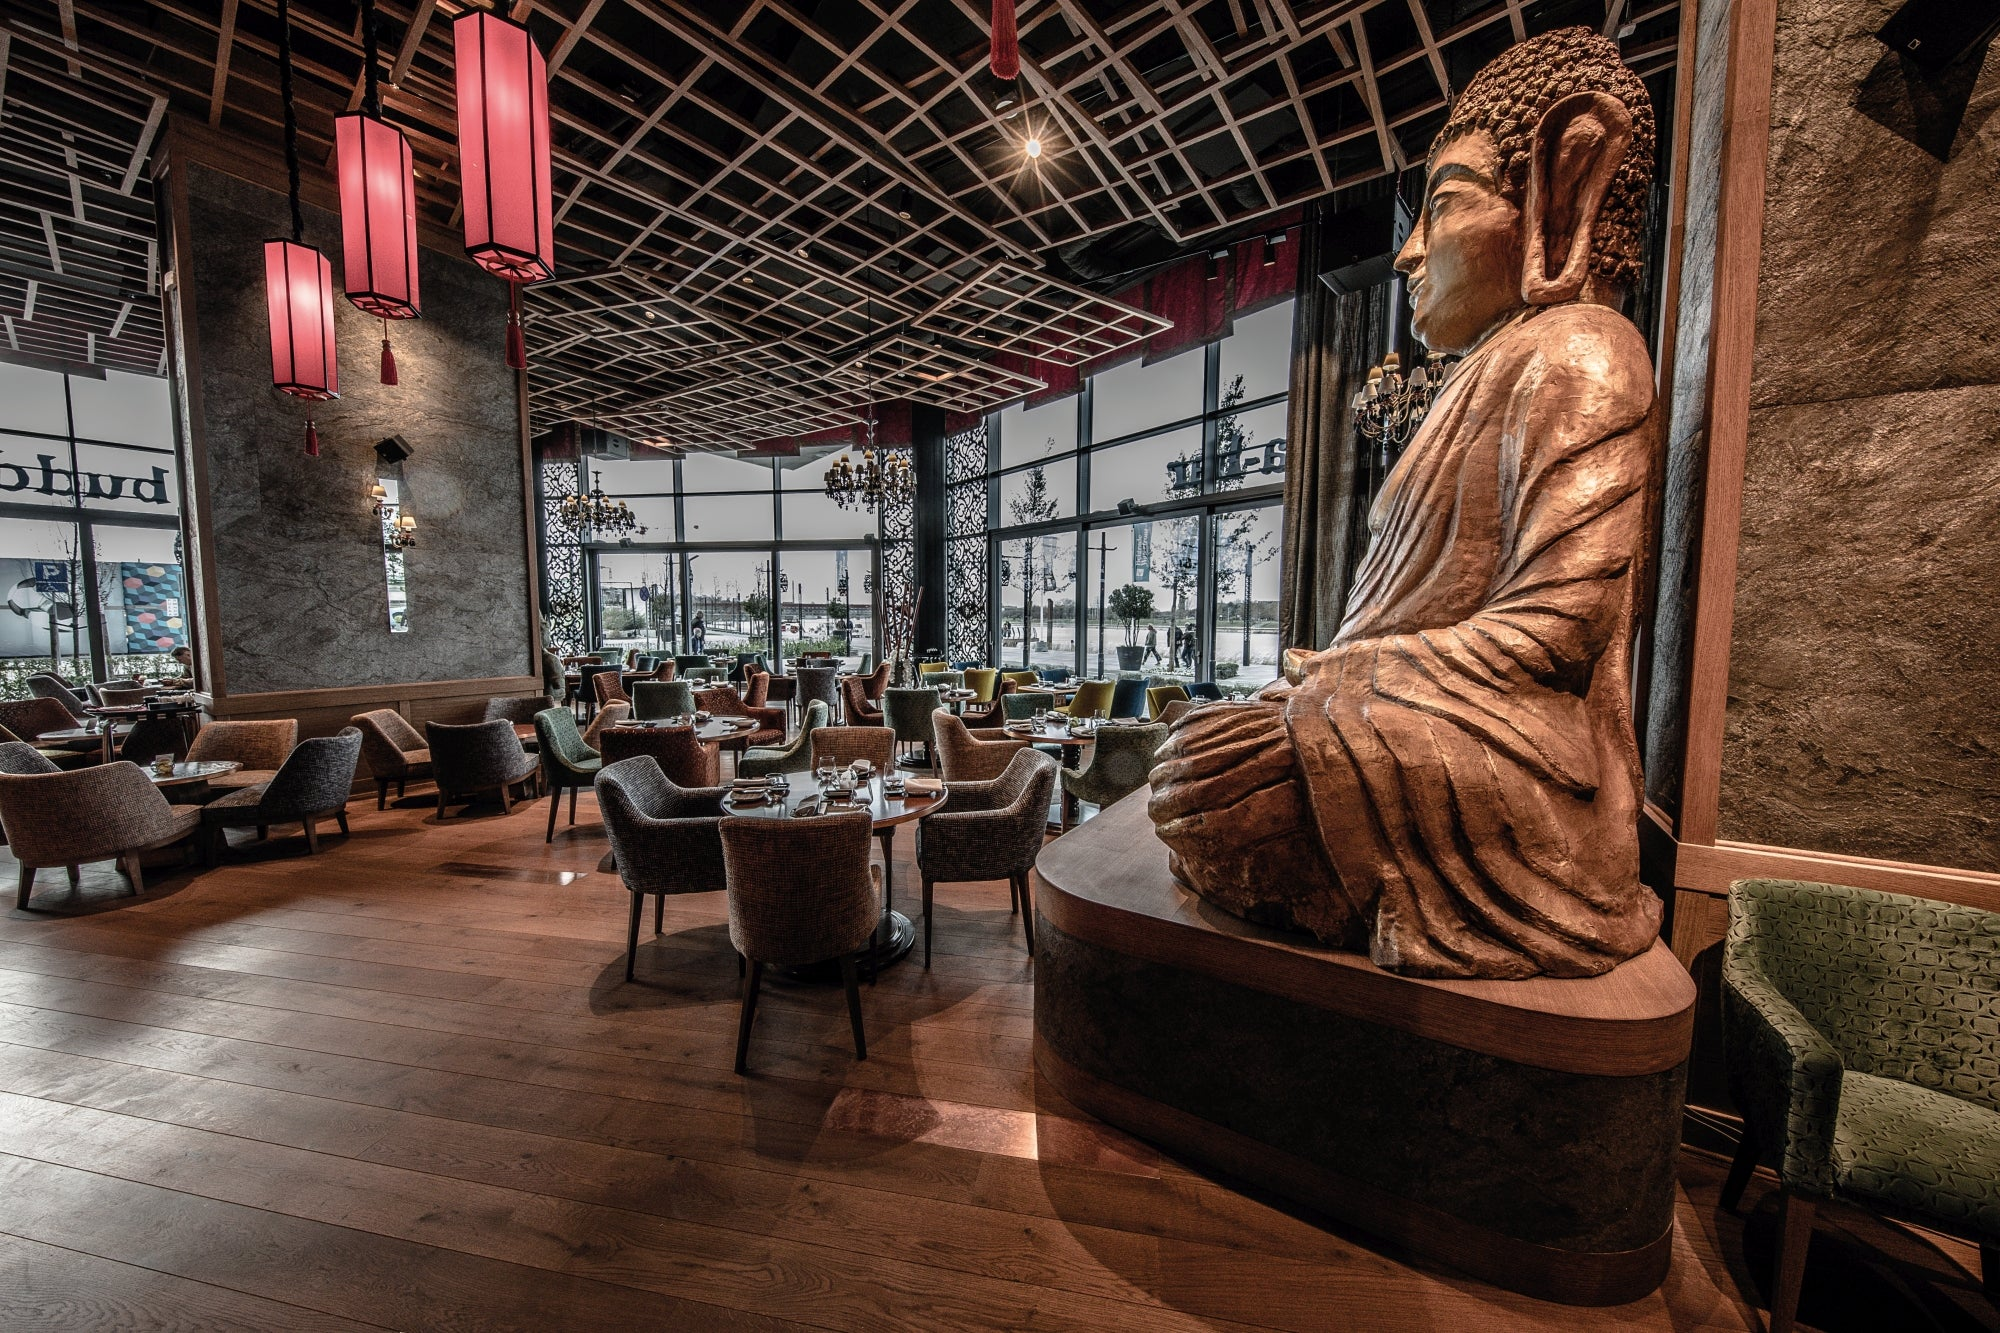 Buddha bar restaurant and wood flooring in the dining area.